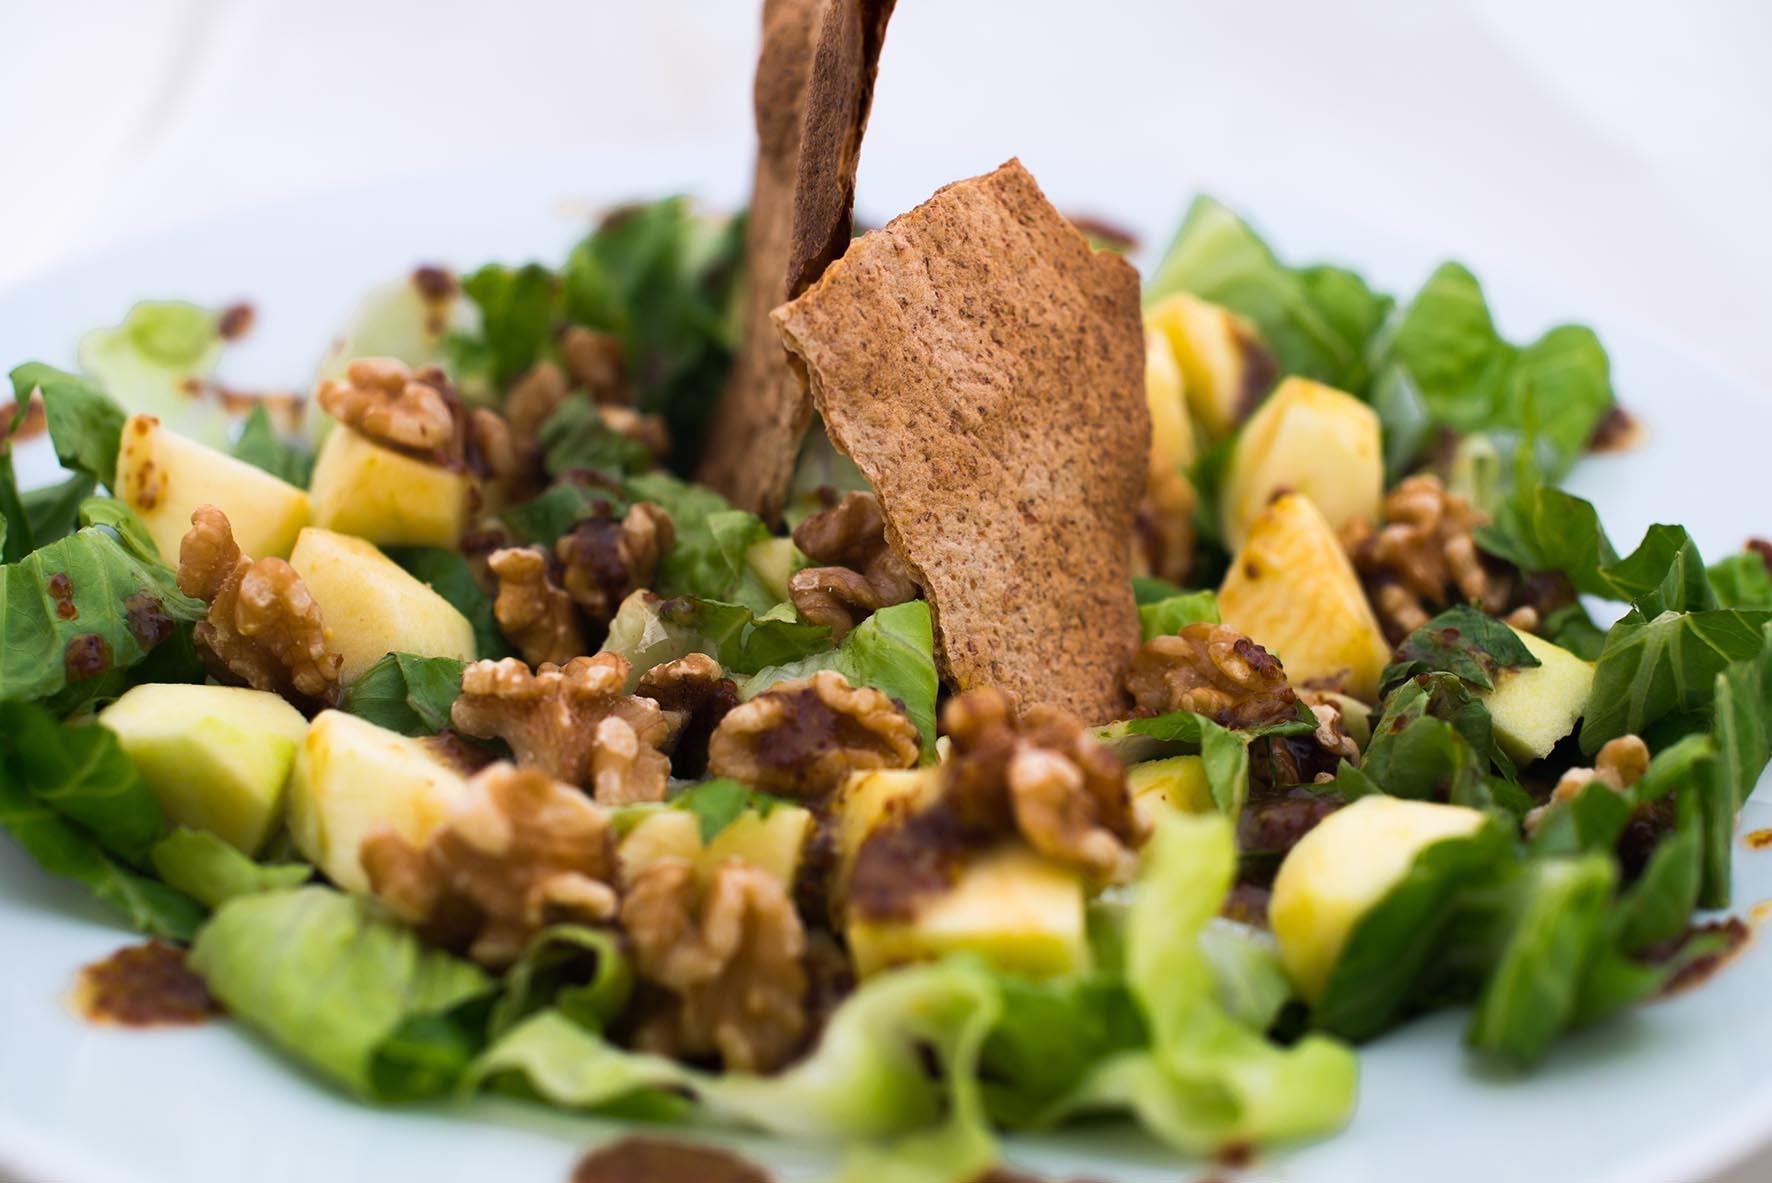 Walnut-and-apple-salad-recipe-salads